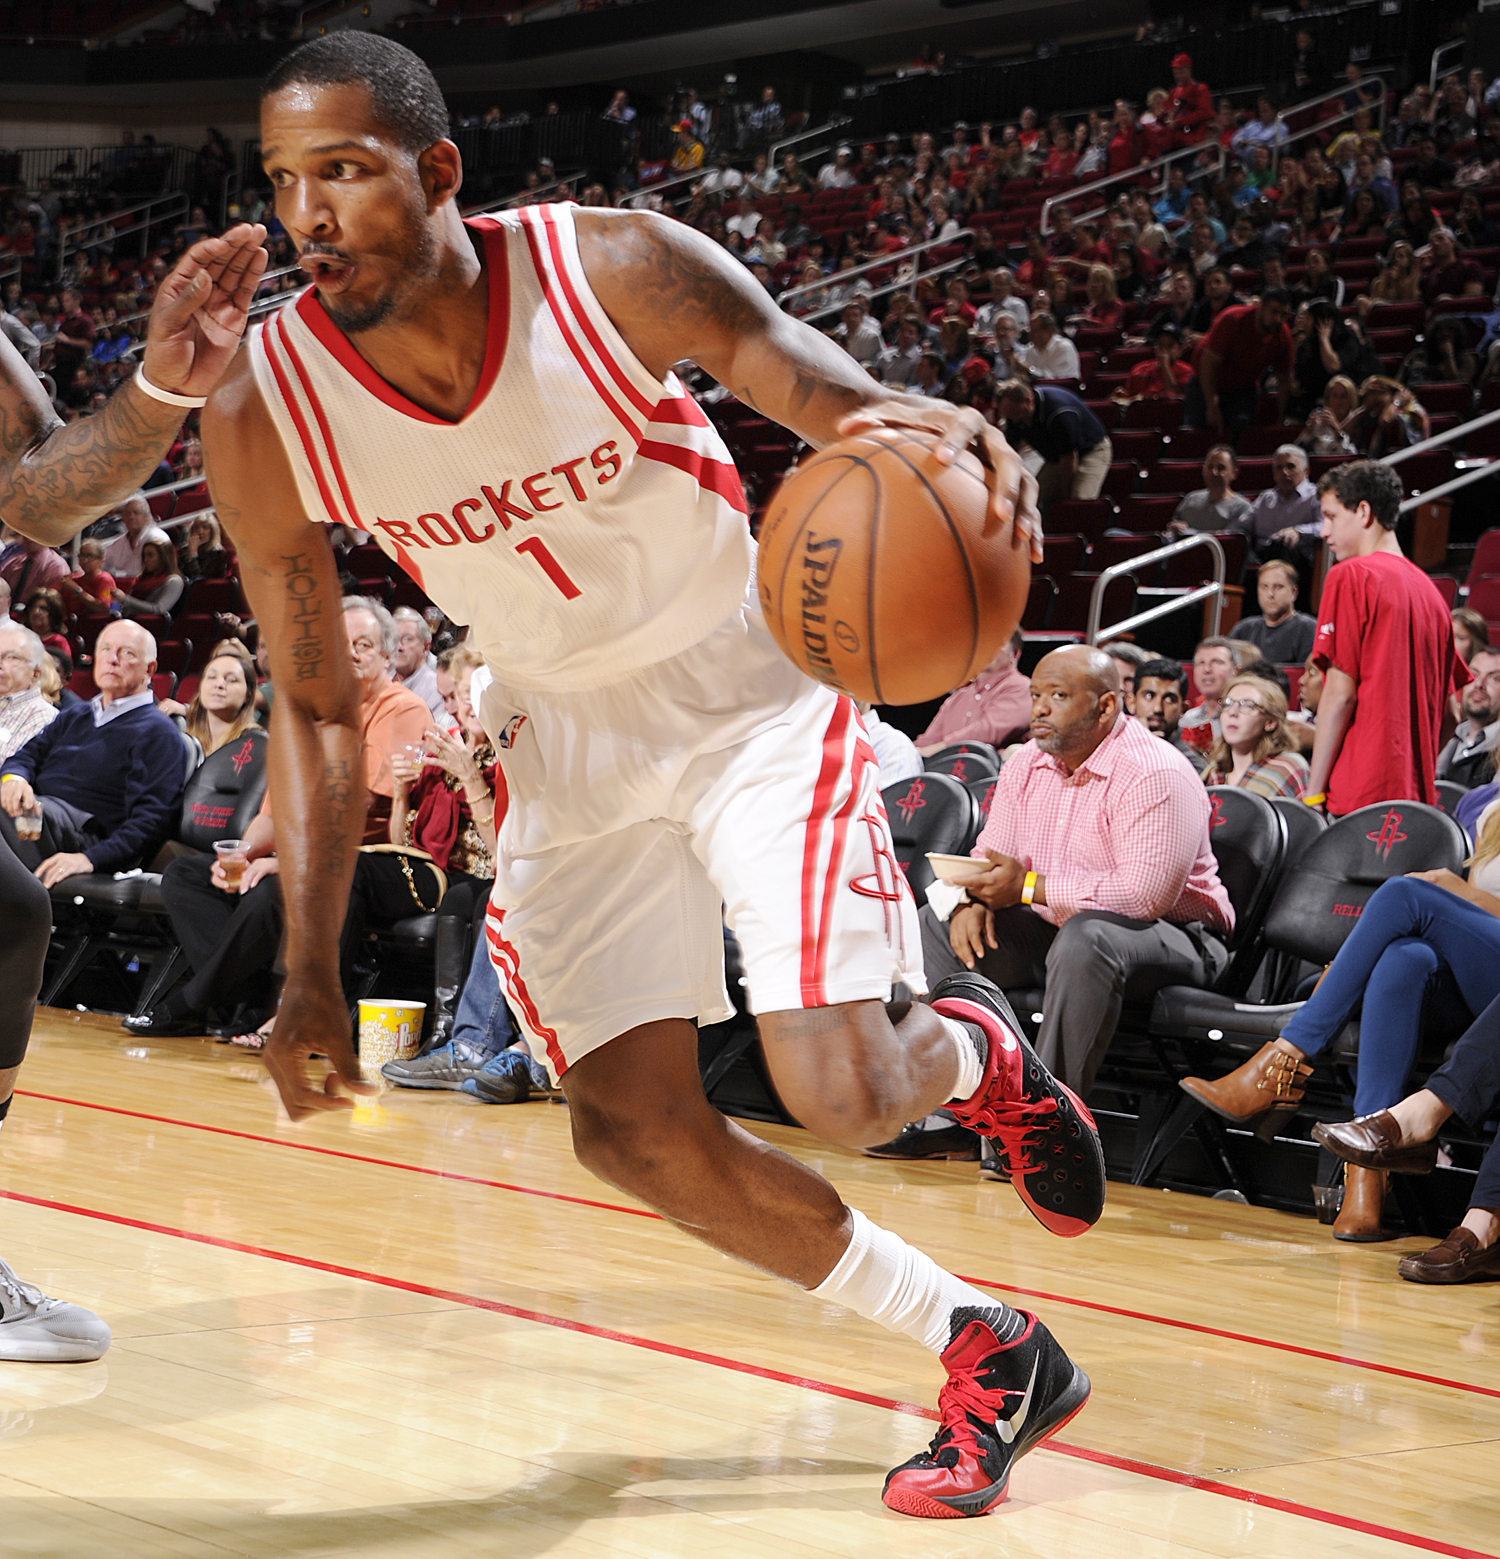 HOUSTON, TX - NOVEMBER 16:  Trevor Ariza #1 of the Houston Rockets handles the ball against the Boston Celtics on November 16, 2015 at the Toyota Center in Houston, Texas. NOTE TO USER: User expressly acknowledges and agrees that, by downloading and or using this photograph, User is consenting to the terms and conditions of the Getty Images License Agreement. Mandatory Copyright Notice: Copyright 2015 NBAE (Photo by Bill Baptist/NBAE via Getty Images)